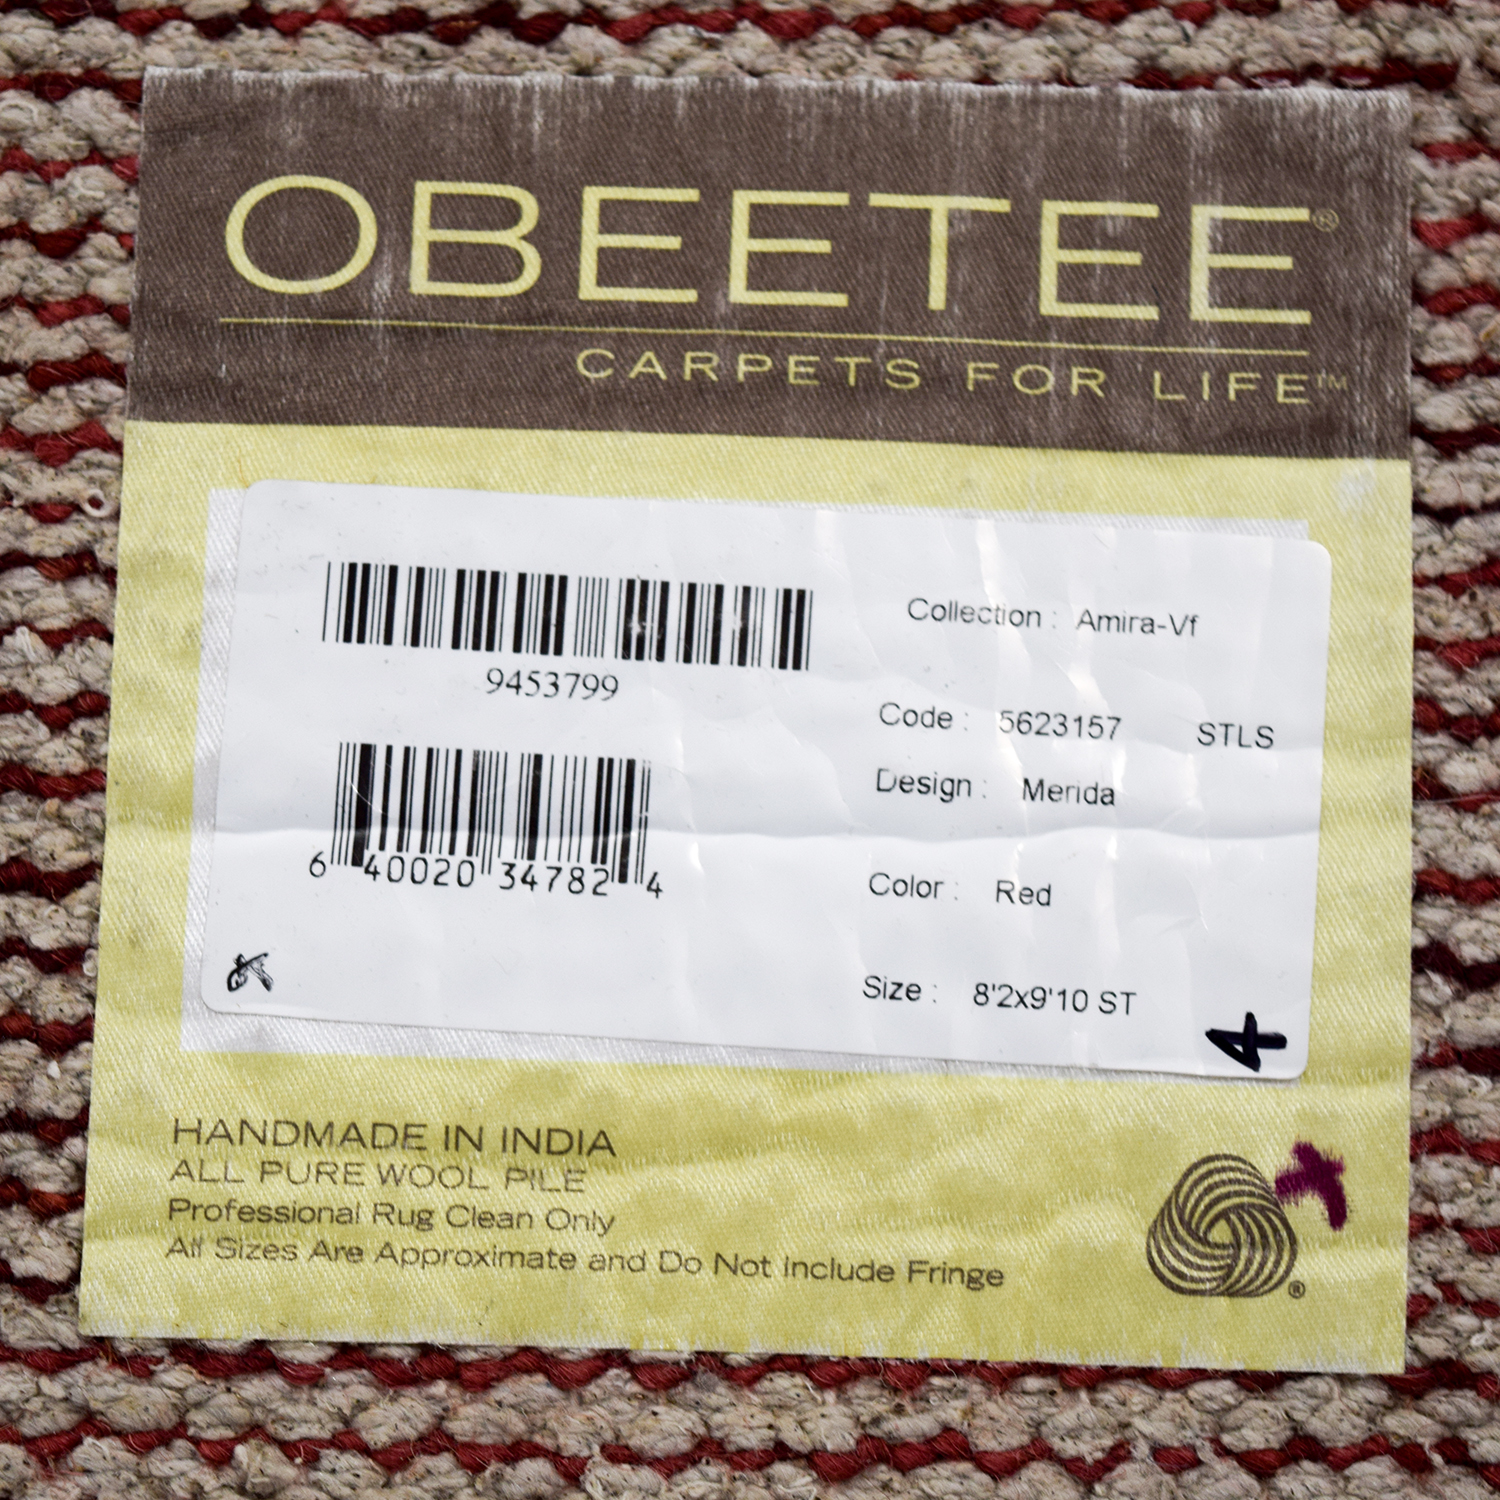 Obeetee Obeetee Hand Knotted Amira Paprika Wool Rug second hand